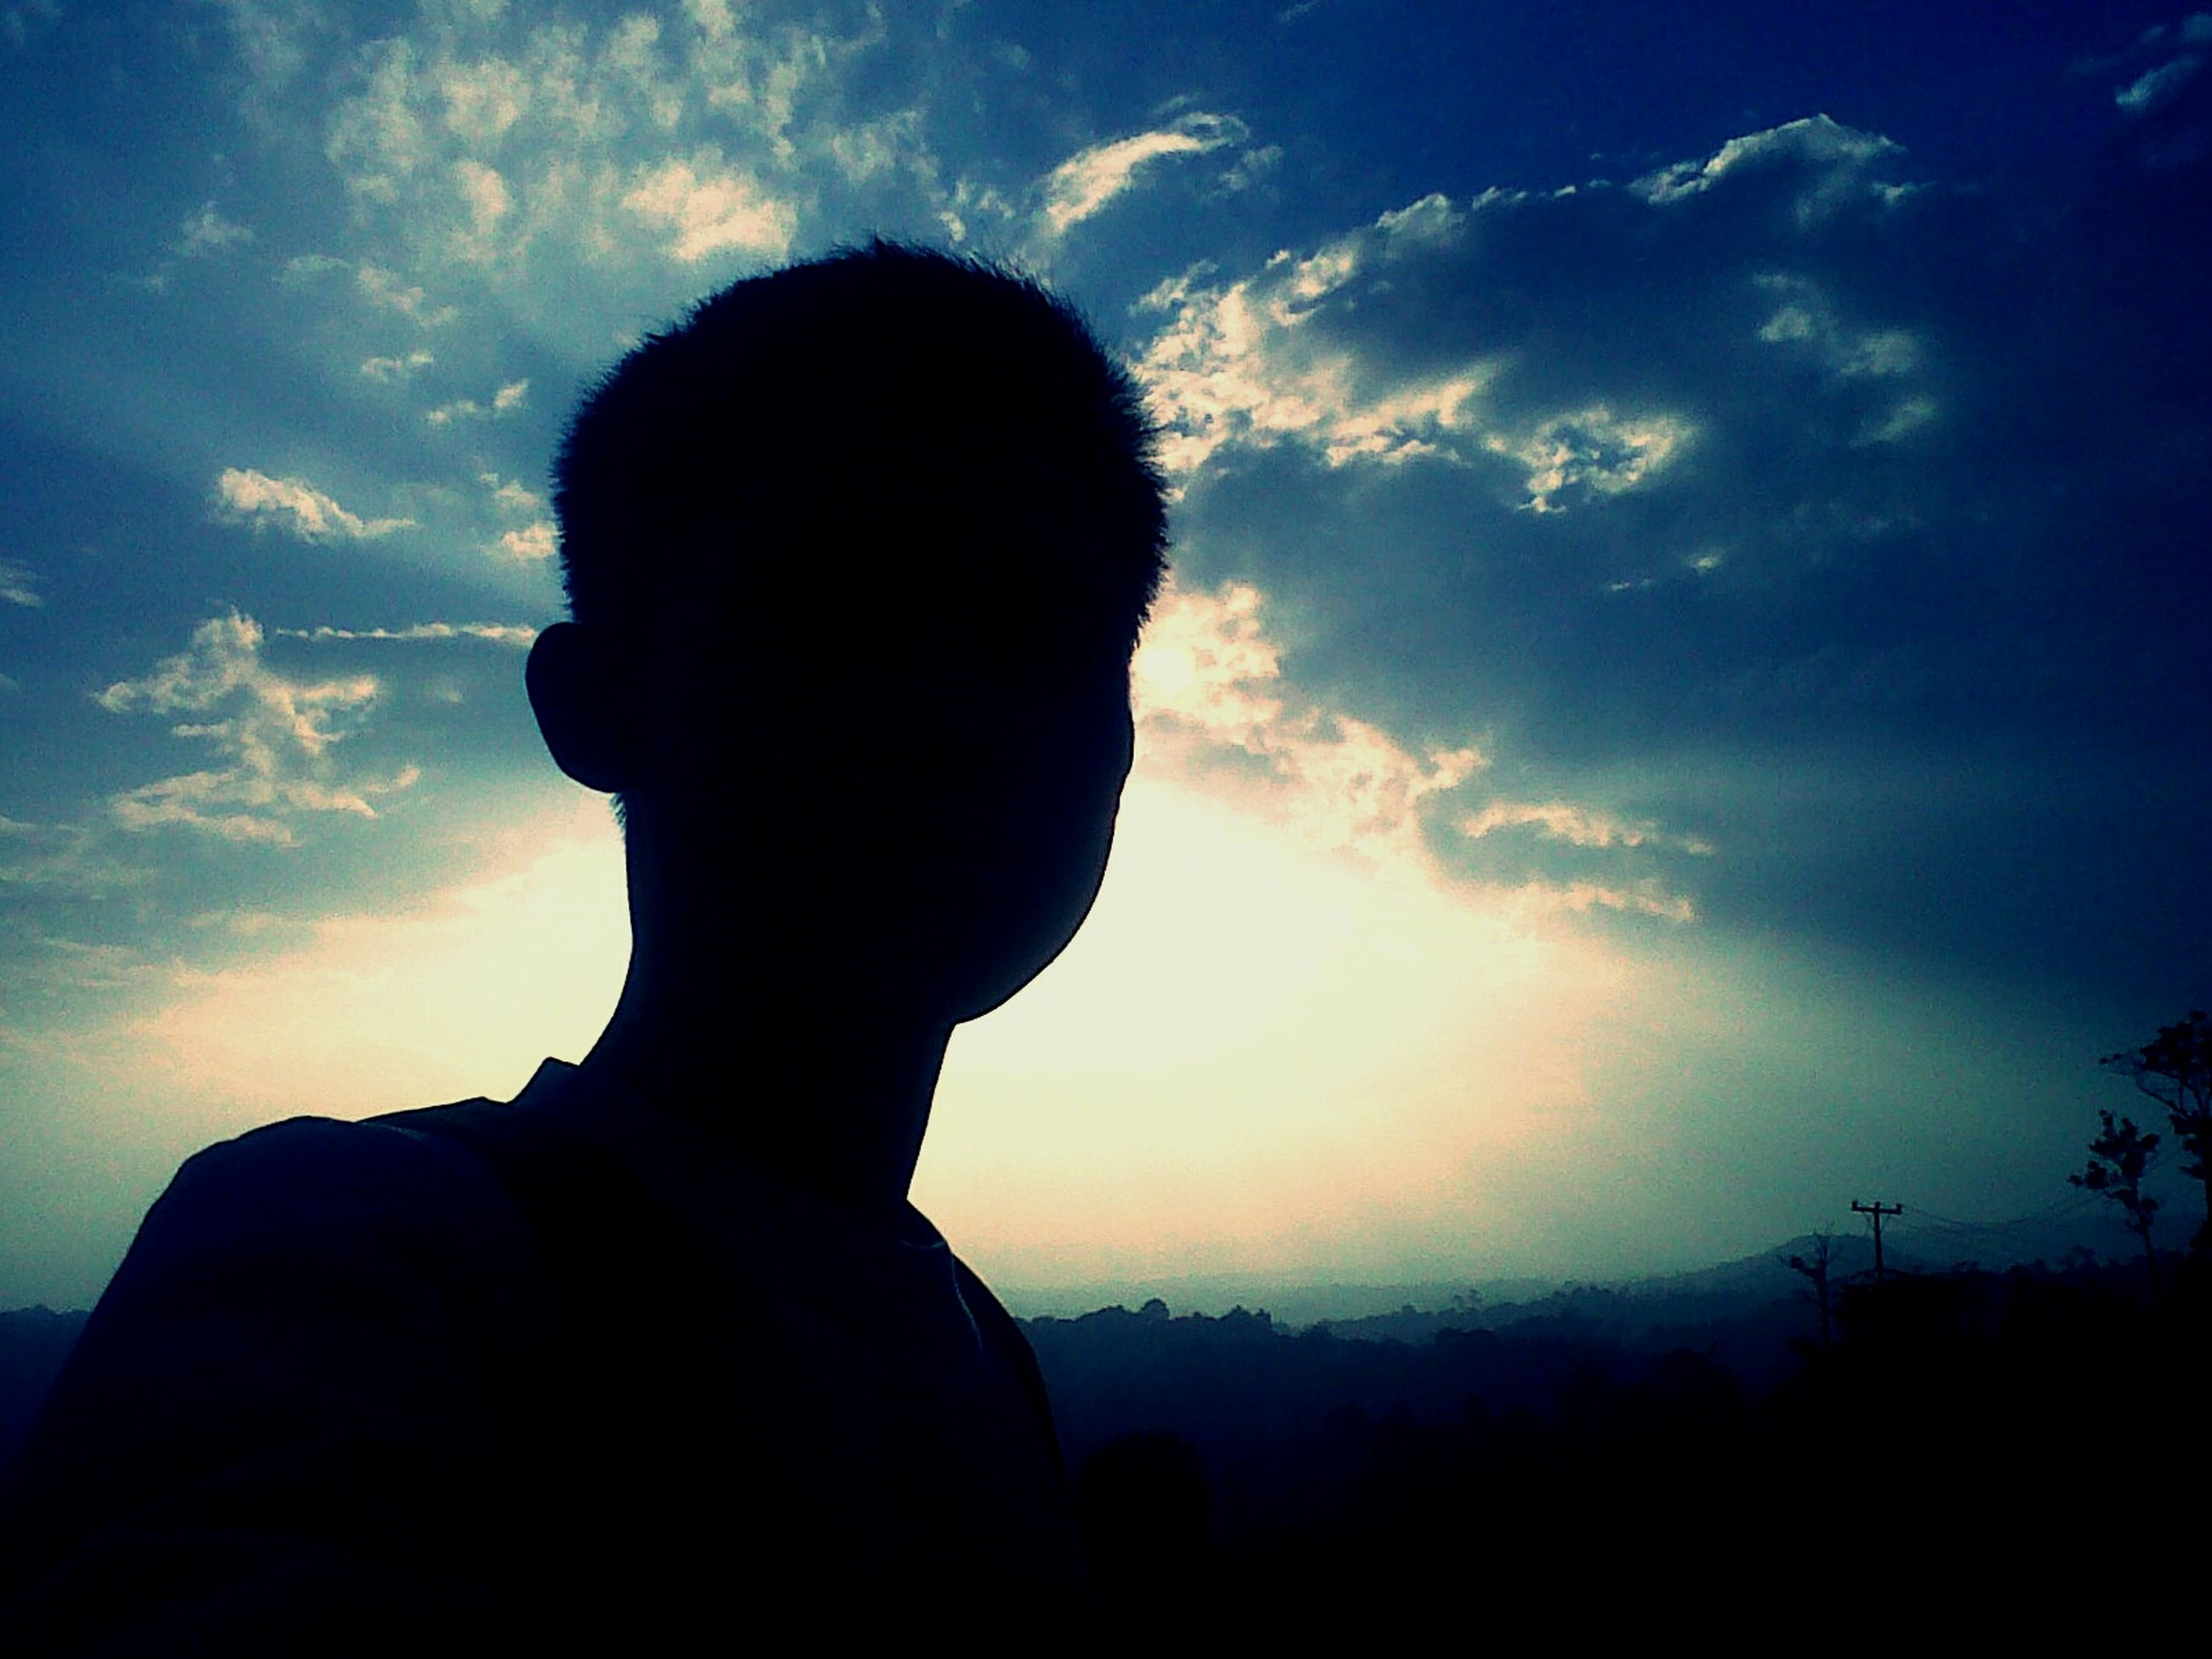 silhouette, sky, lifestyles, sunset, leisure activity, cloud - sky, men, waist up, rear view, three quarter length, cloud, standing, low angle view, sun, nature, person, beauty in nature, sunlight